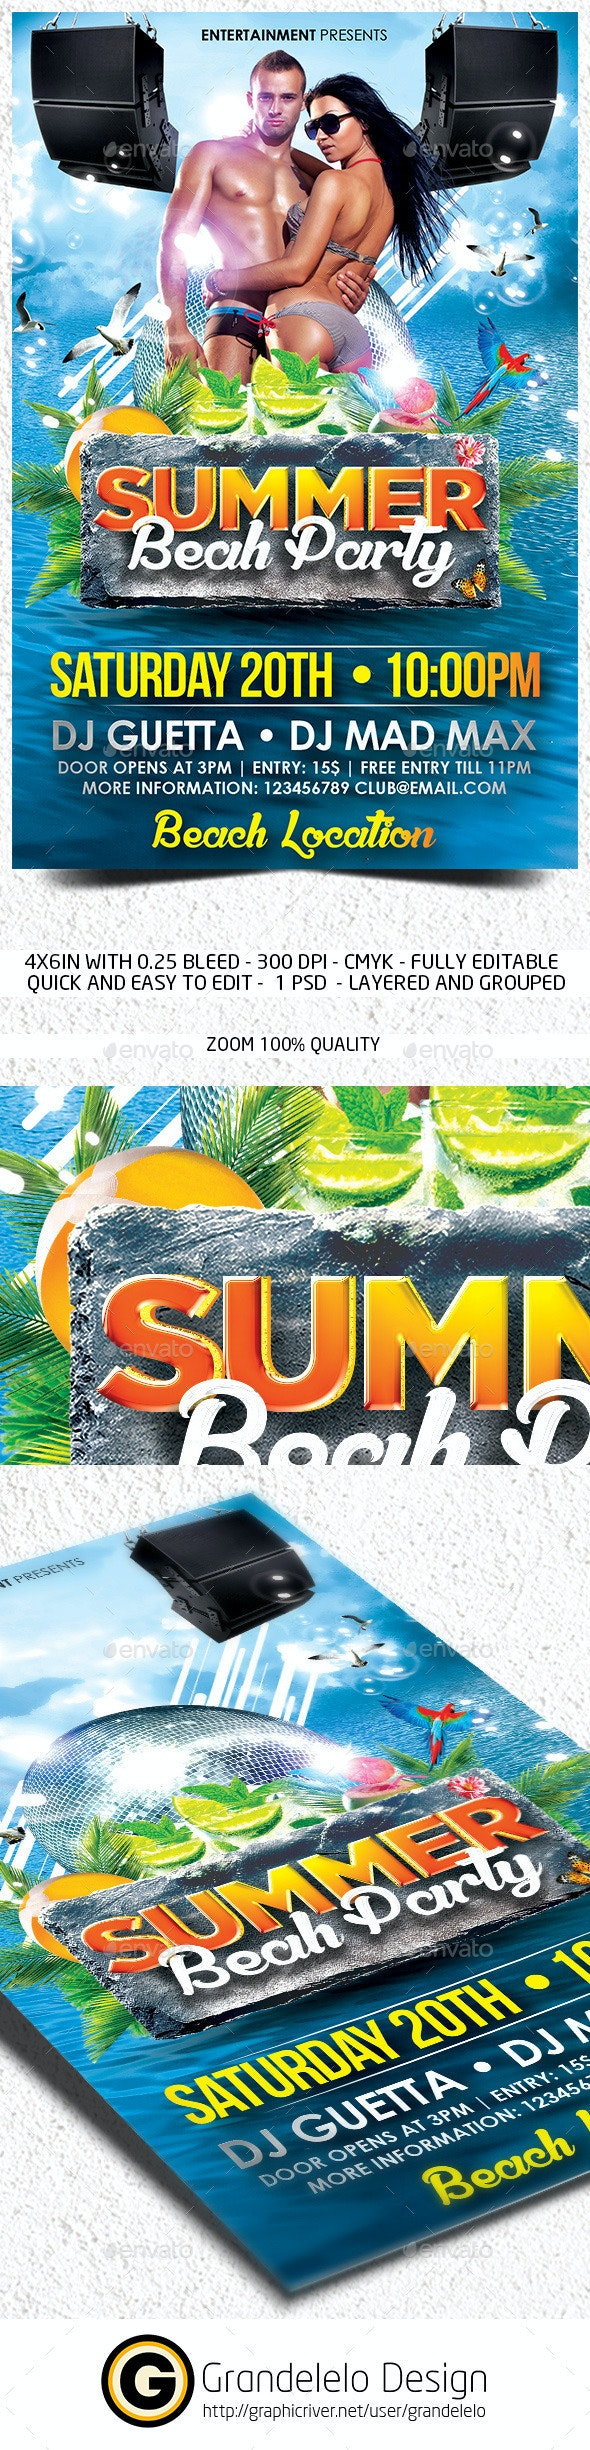 The Summer Beach Party Flyer Template - Clubs & Parties Events